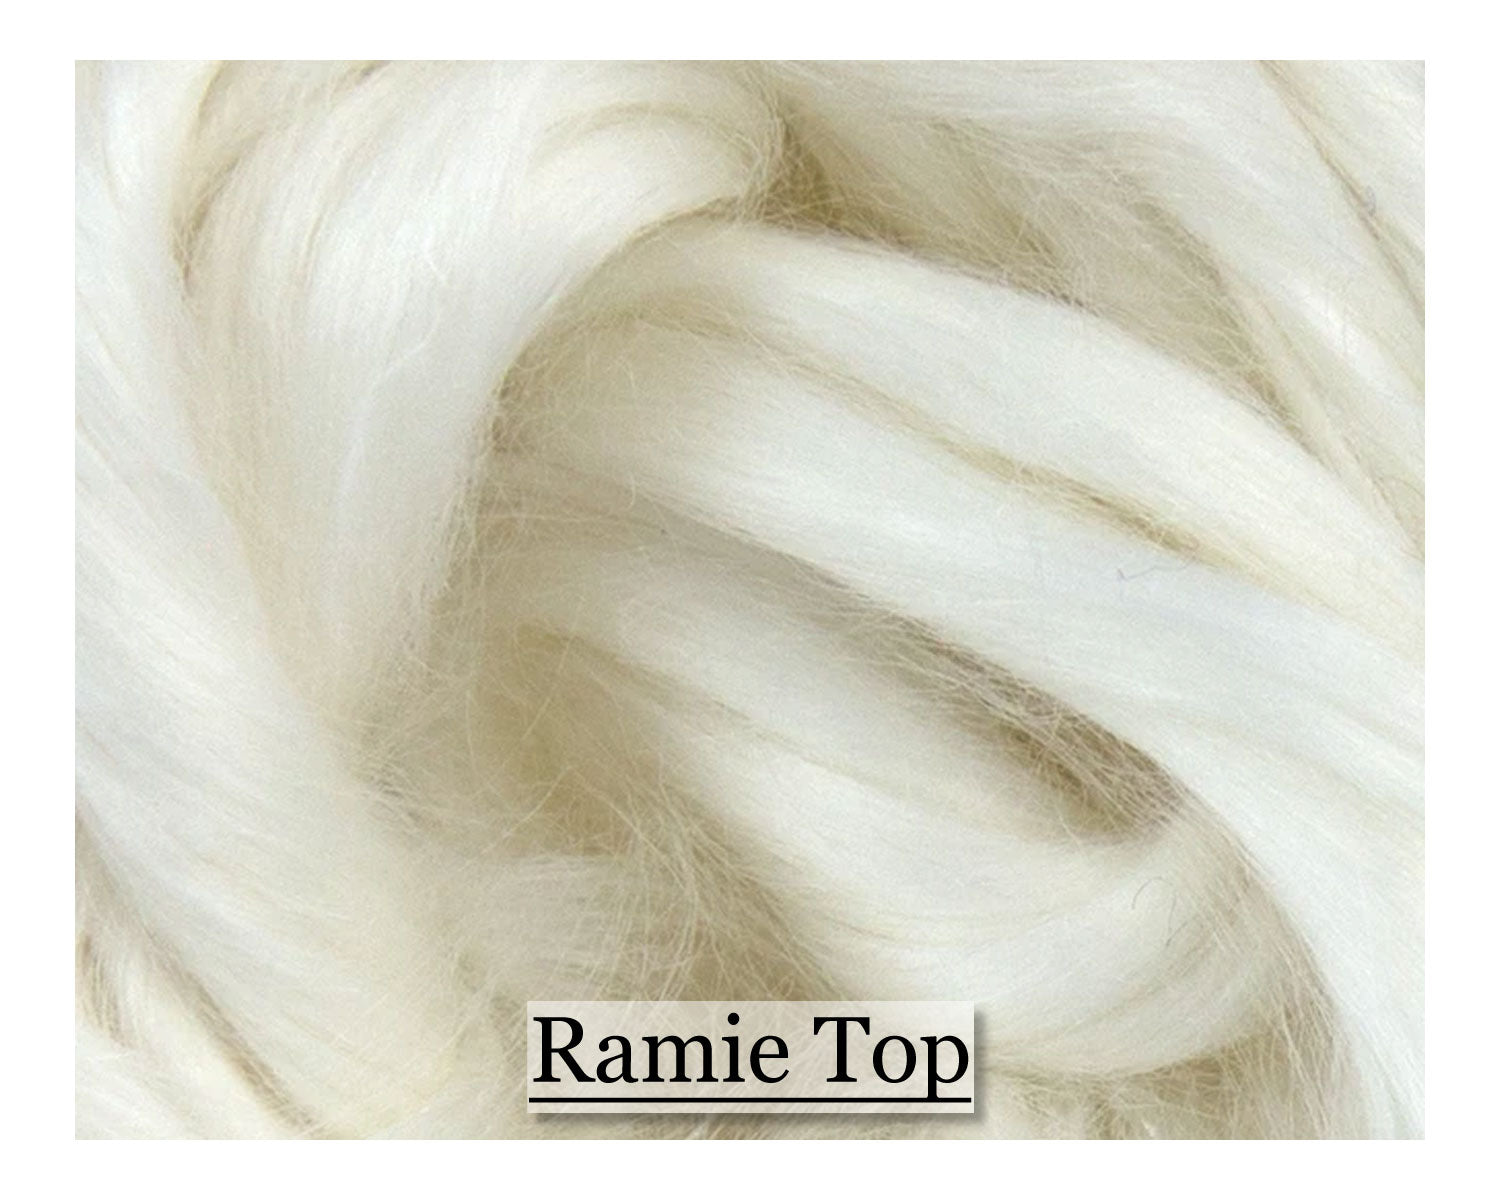 Ramie Top - 1, 2 or 4 oz